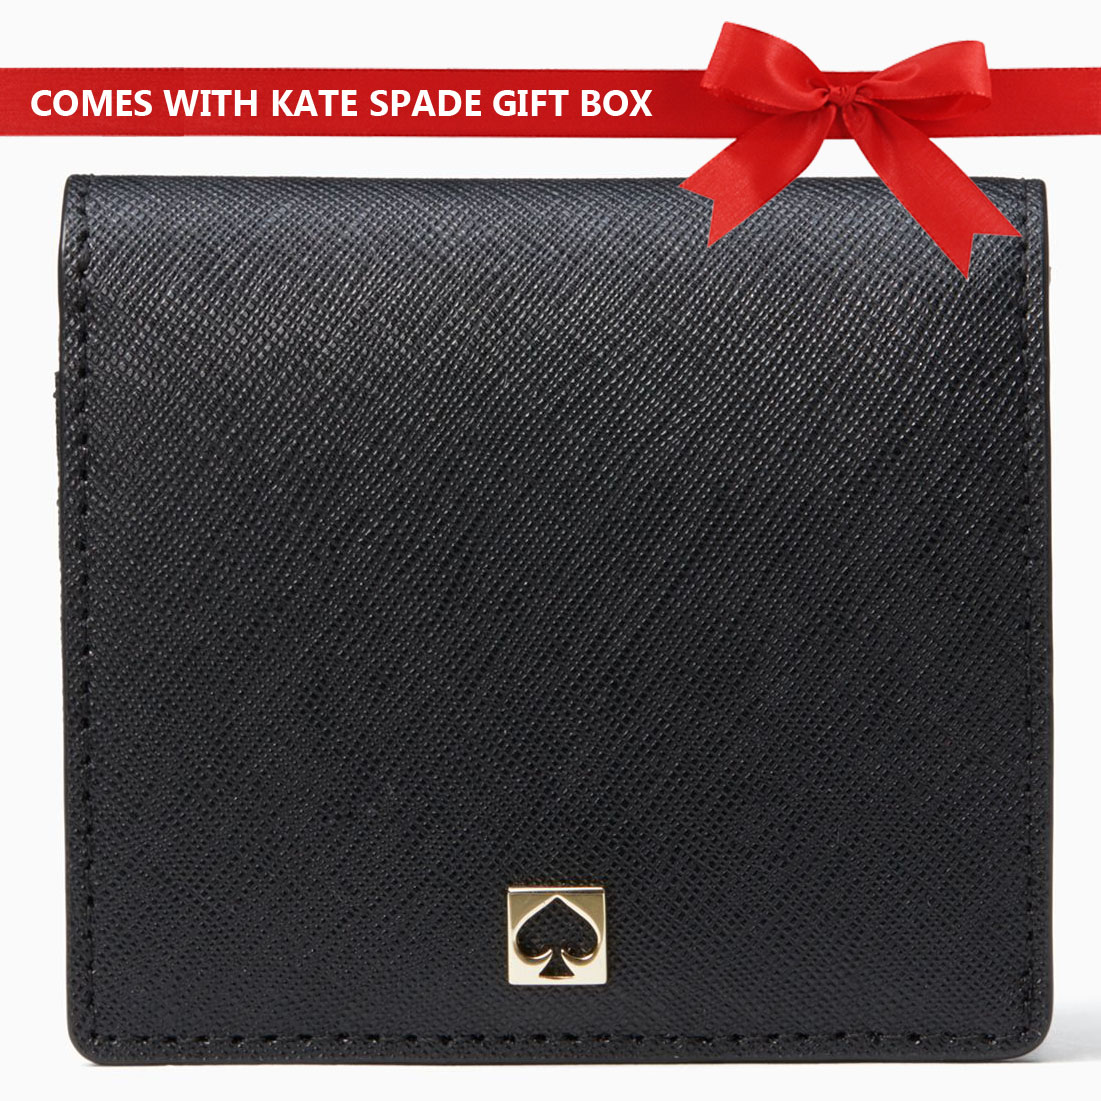 Kate Spade Wallet In Gift Box Cove Street Serenade Small Wallet Black # WLRU4958